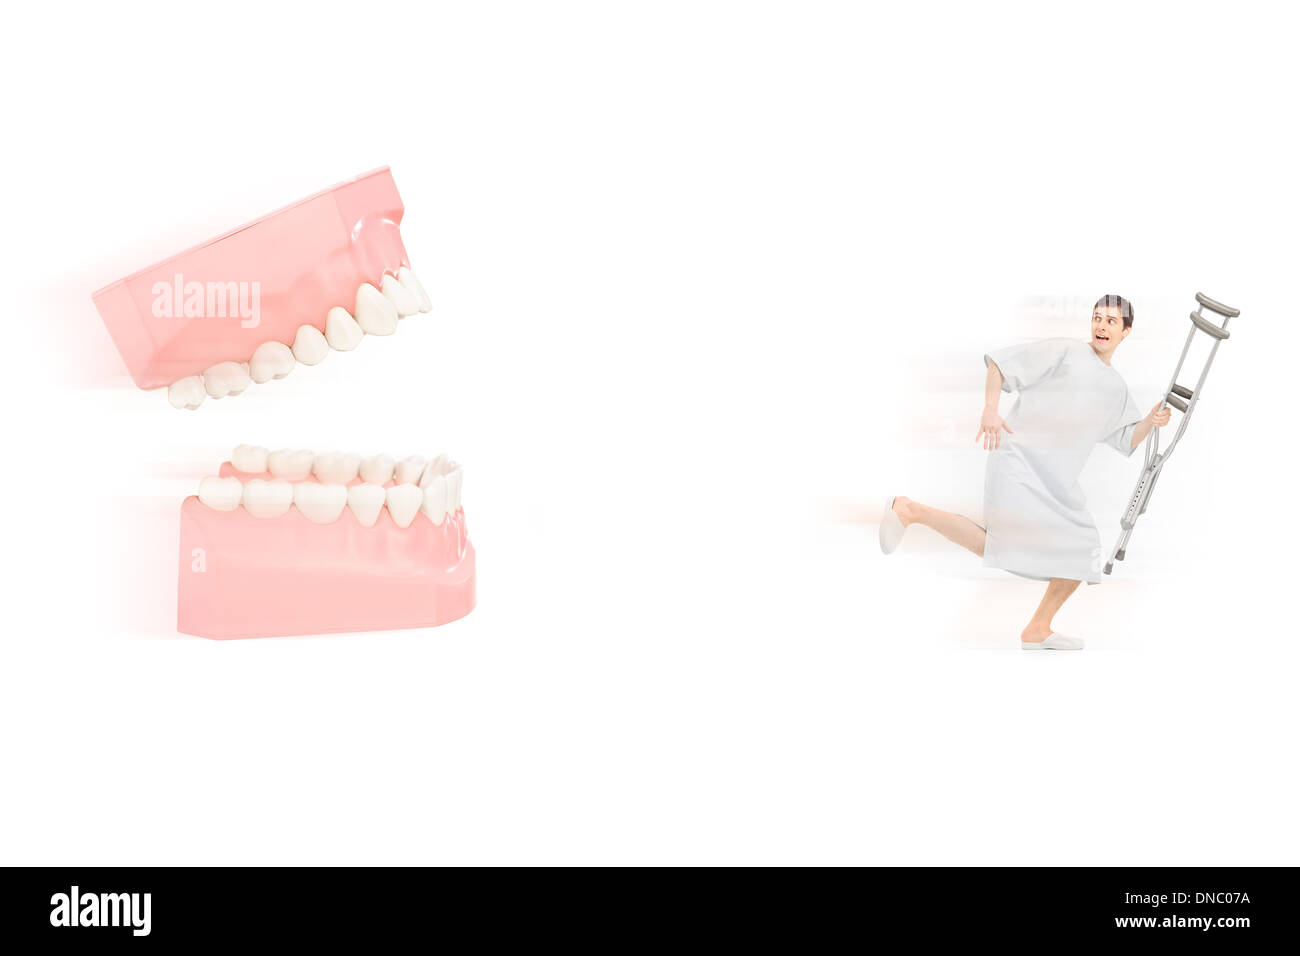 Afraid male patient in hospital gown with crutch running away from open dentures Stock Photo